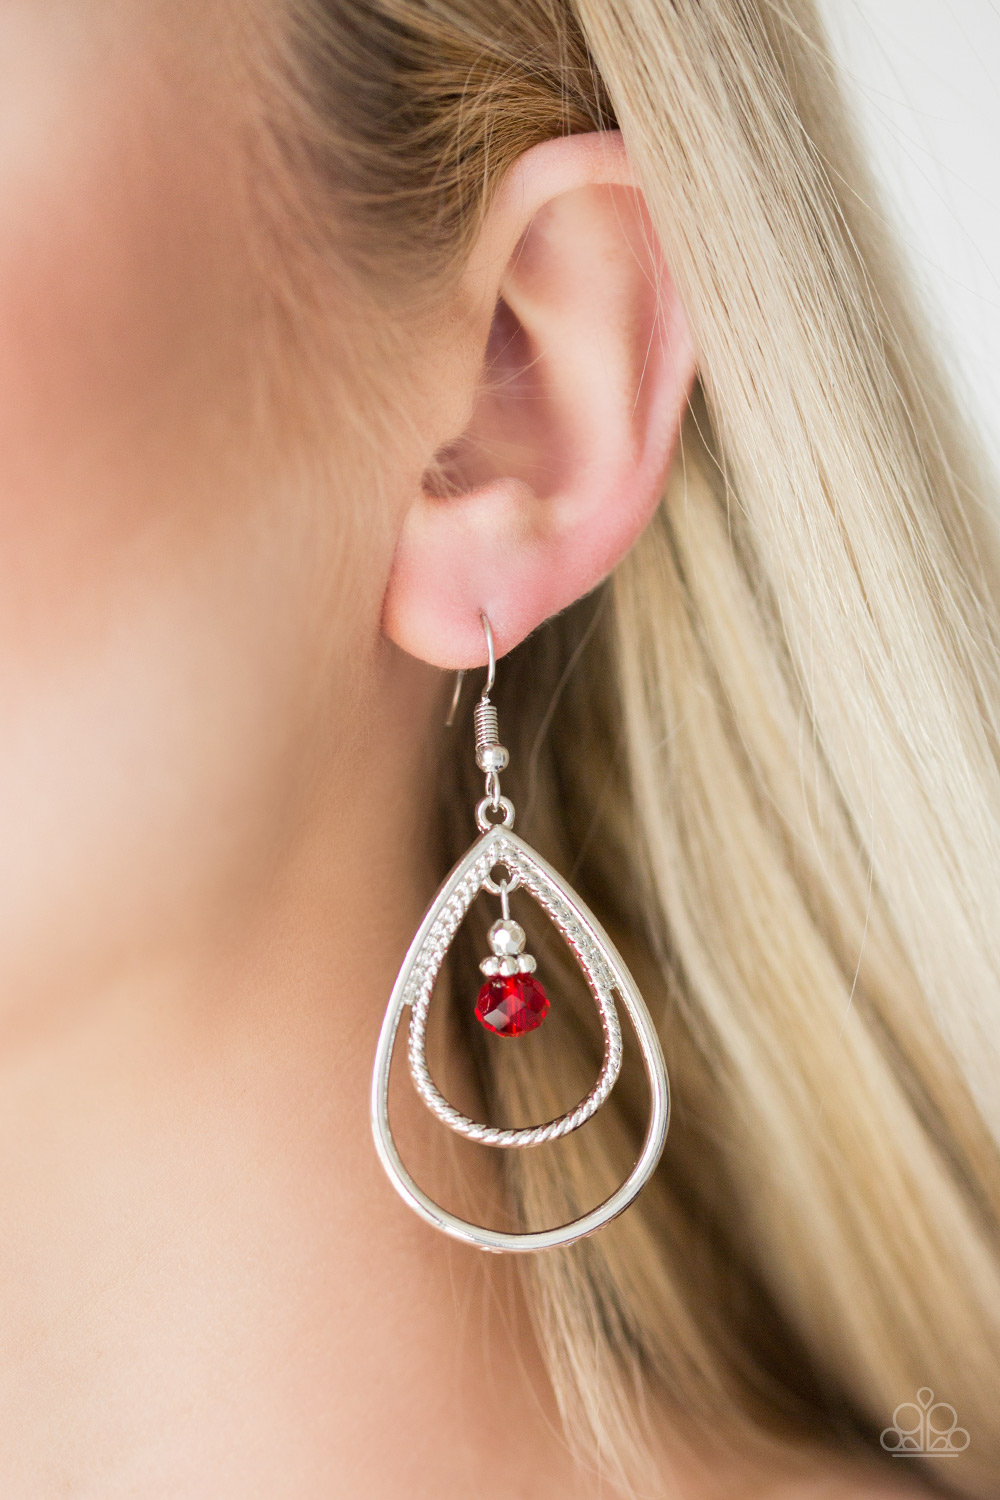 REIGN On My Parade - Red Earrings $5 my-bling.com